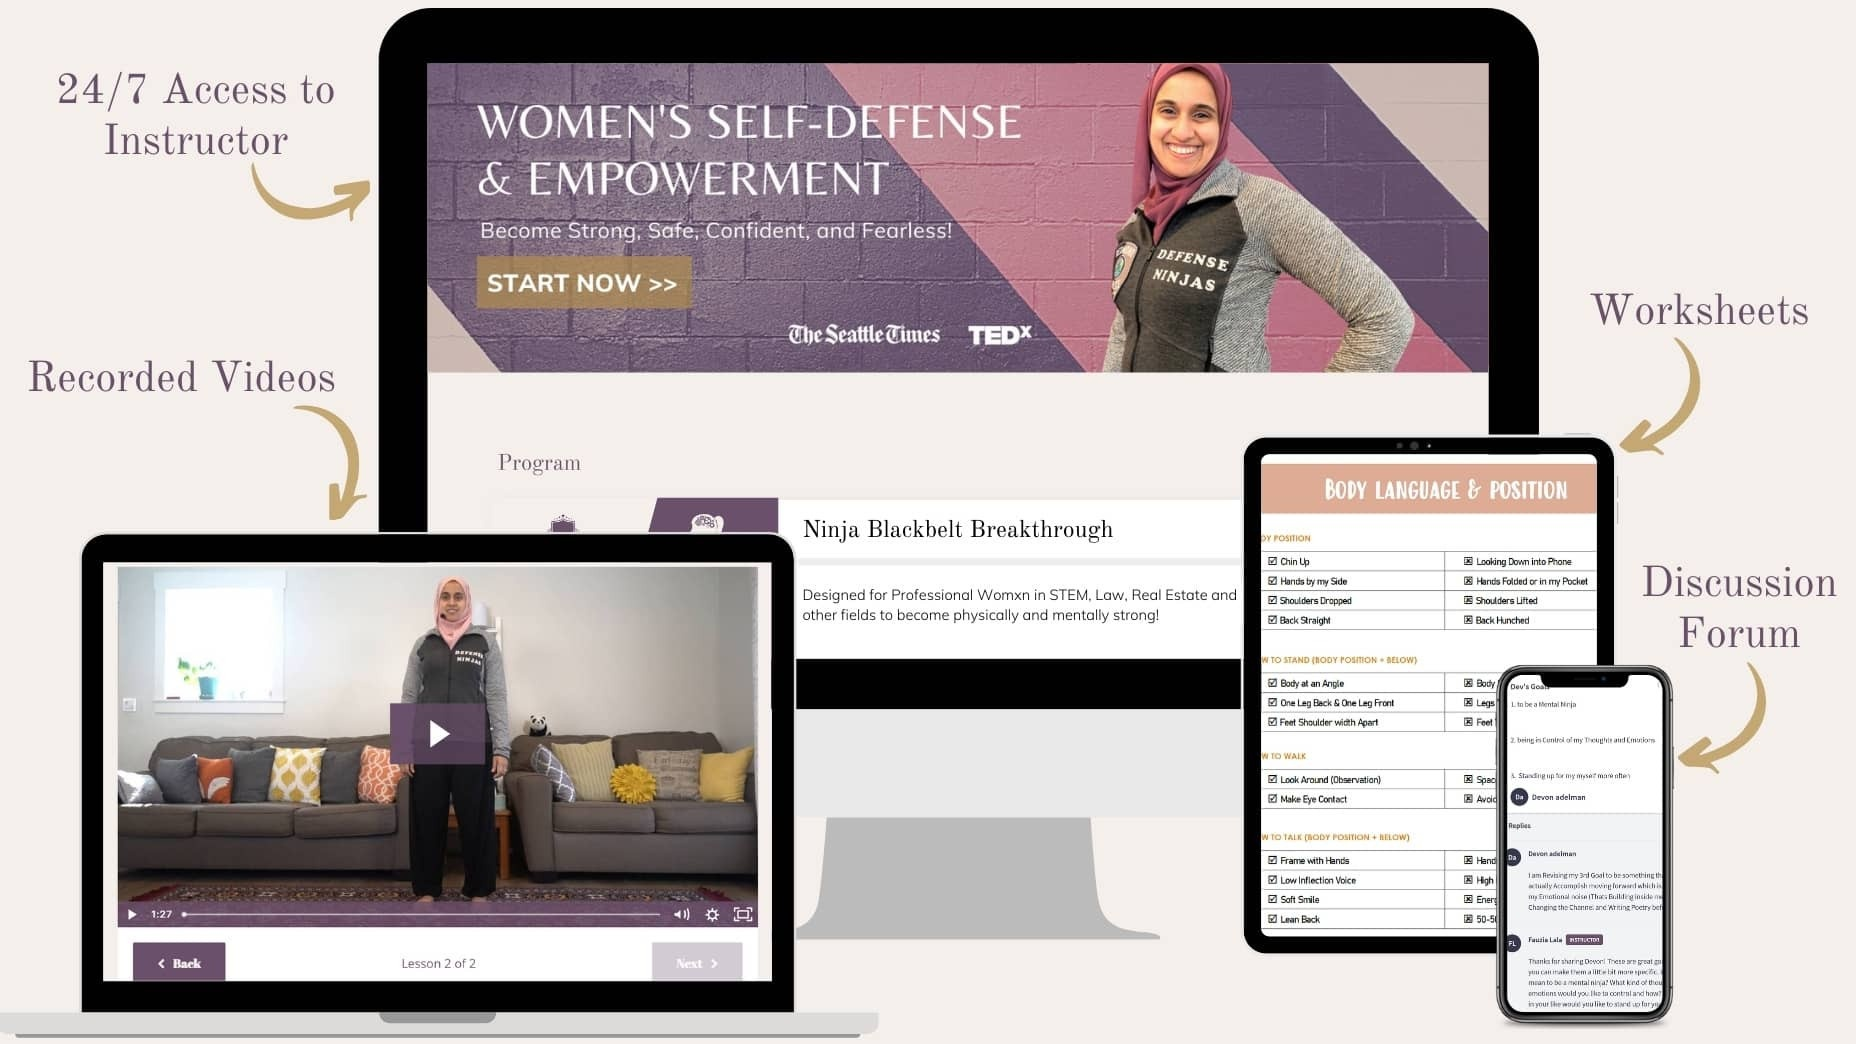 Fauzia Lala wearing Defense Ninjas grey jacket. Women's self-defense and empowerment course, worksheets, video recordings, discussion forum, and 24-7 access to instructor